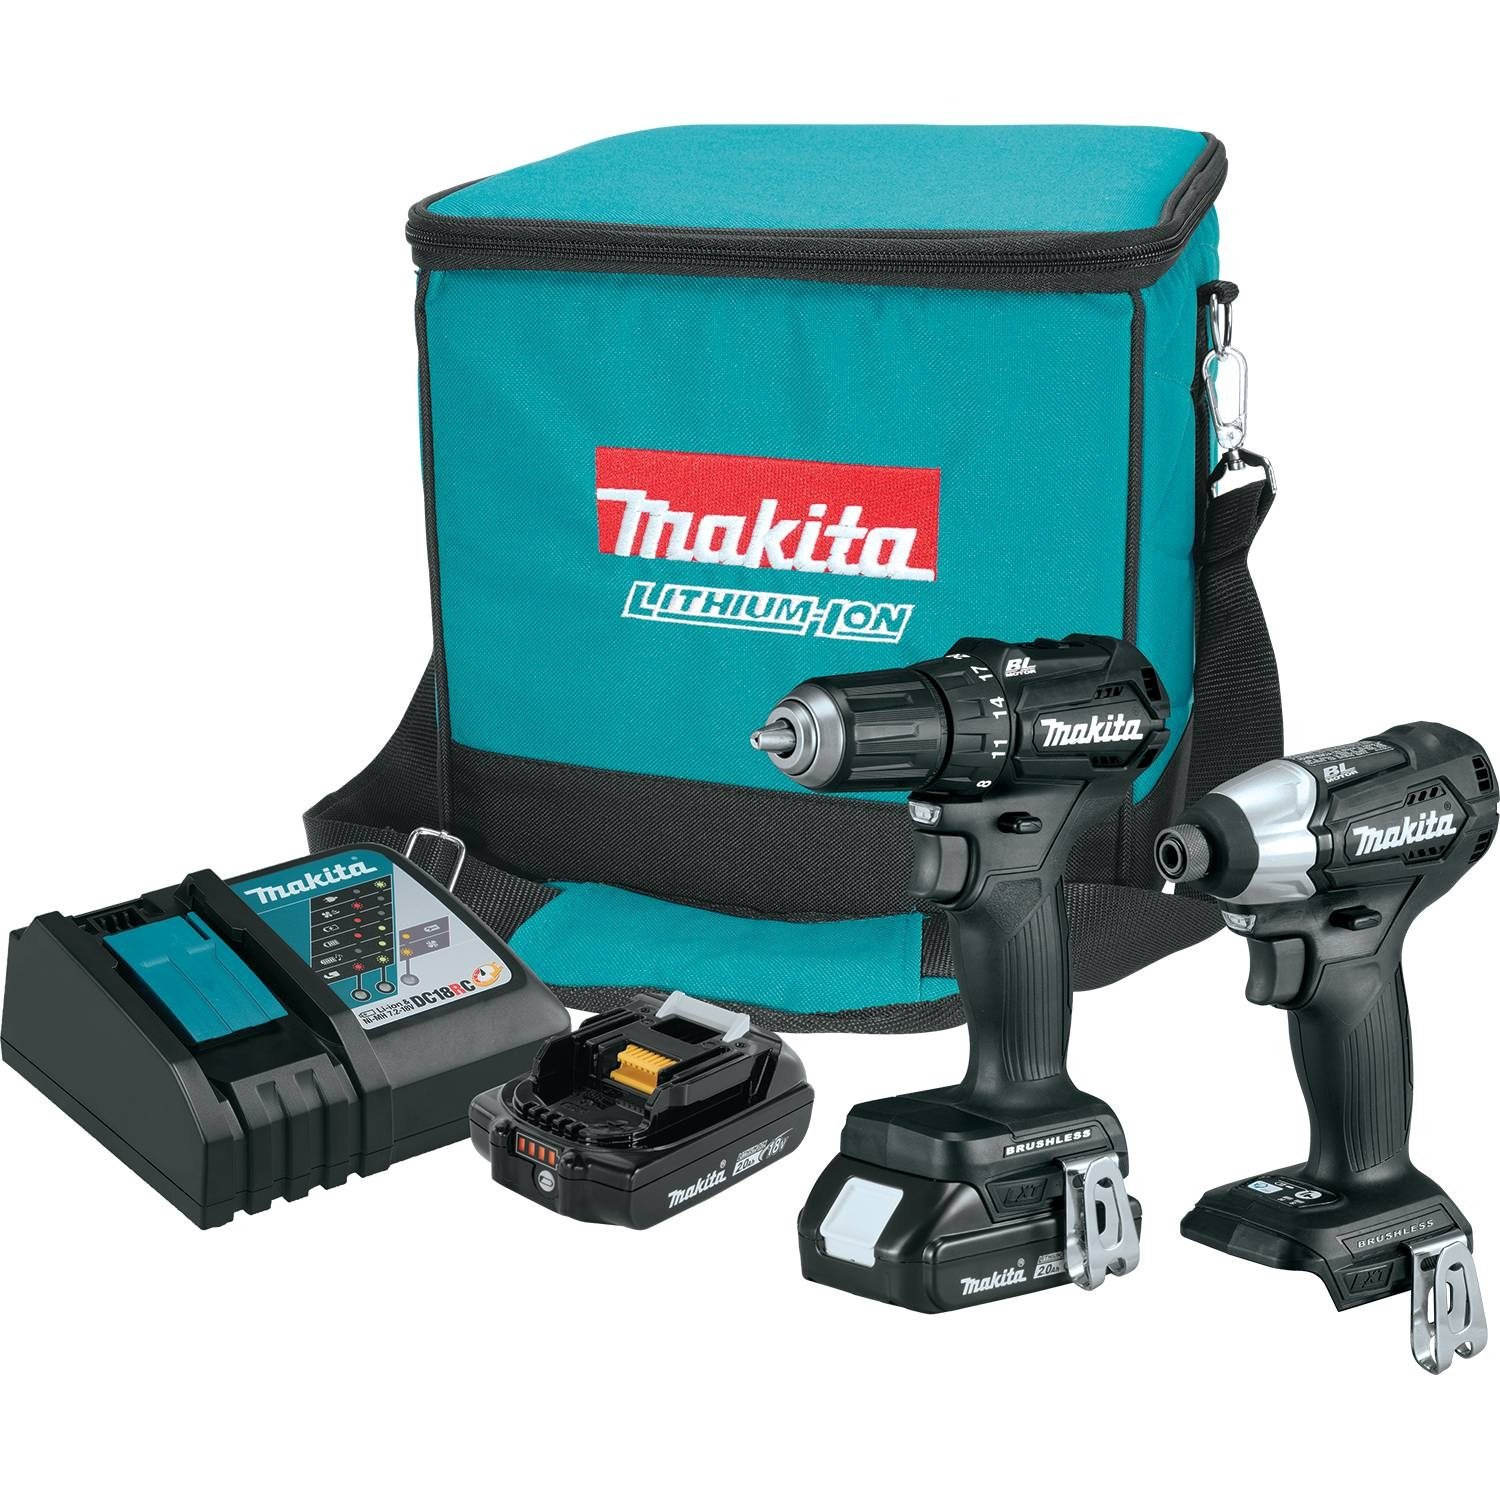 Makita CX200RB 18V LXT Lithium-Ion Sub-Compact Brushless Cordless 2-Pc. Combo Kit (2.0Ah) by Makita